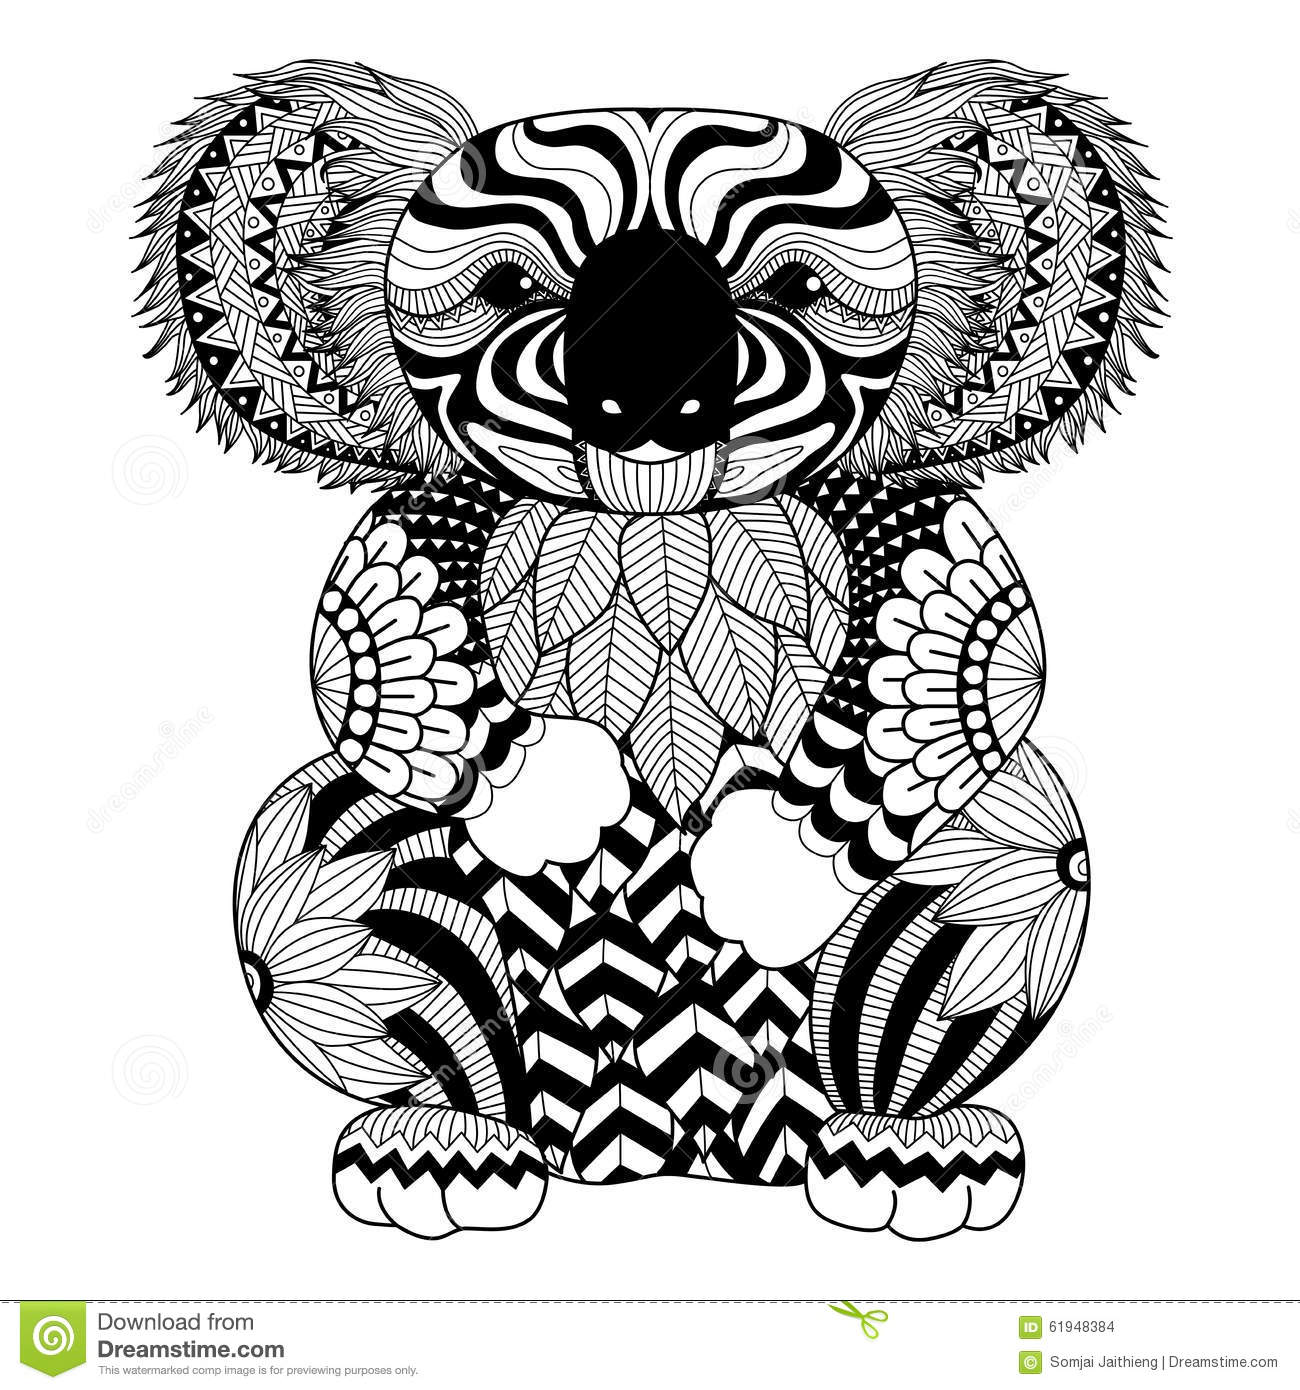 Drawing Zentangle Koala For Coloring Page Shirt Design